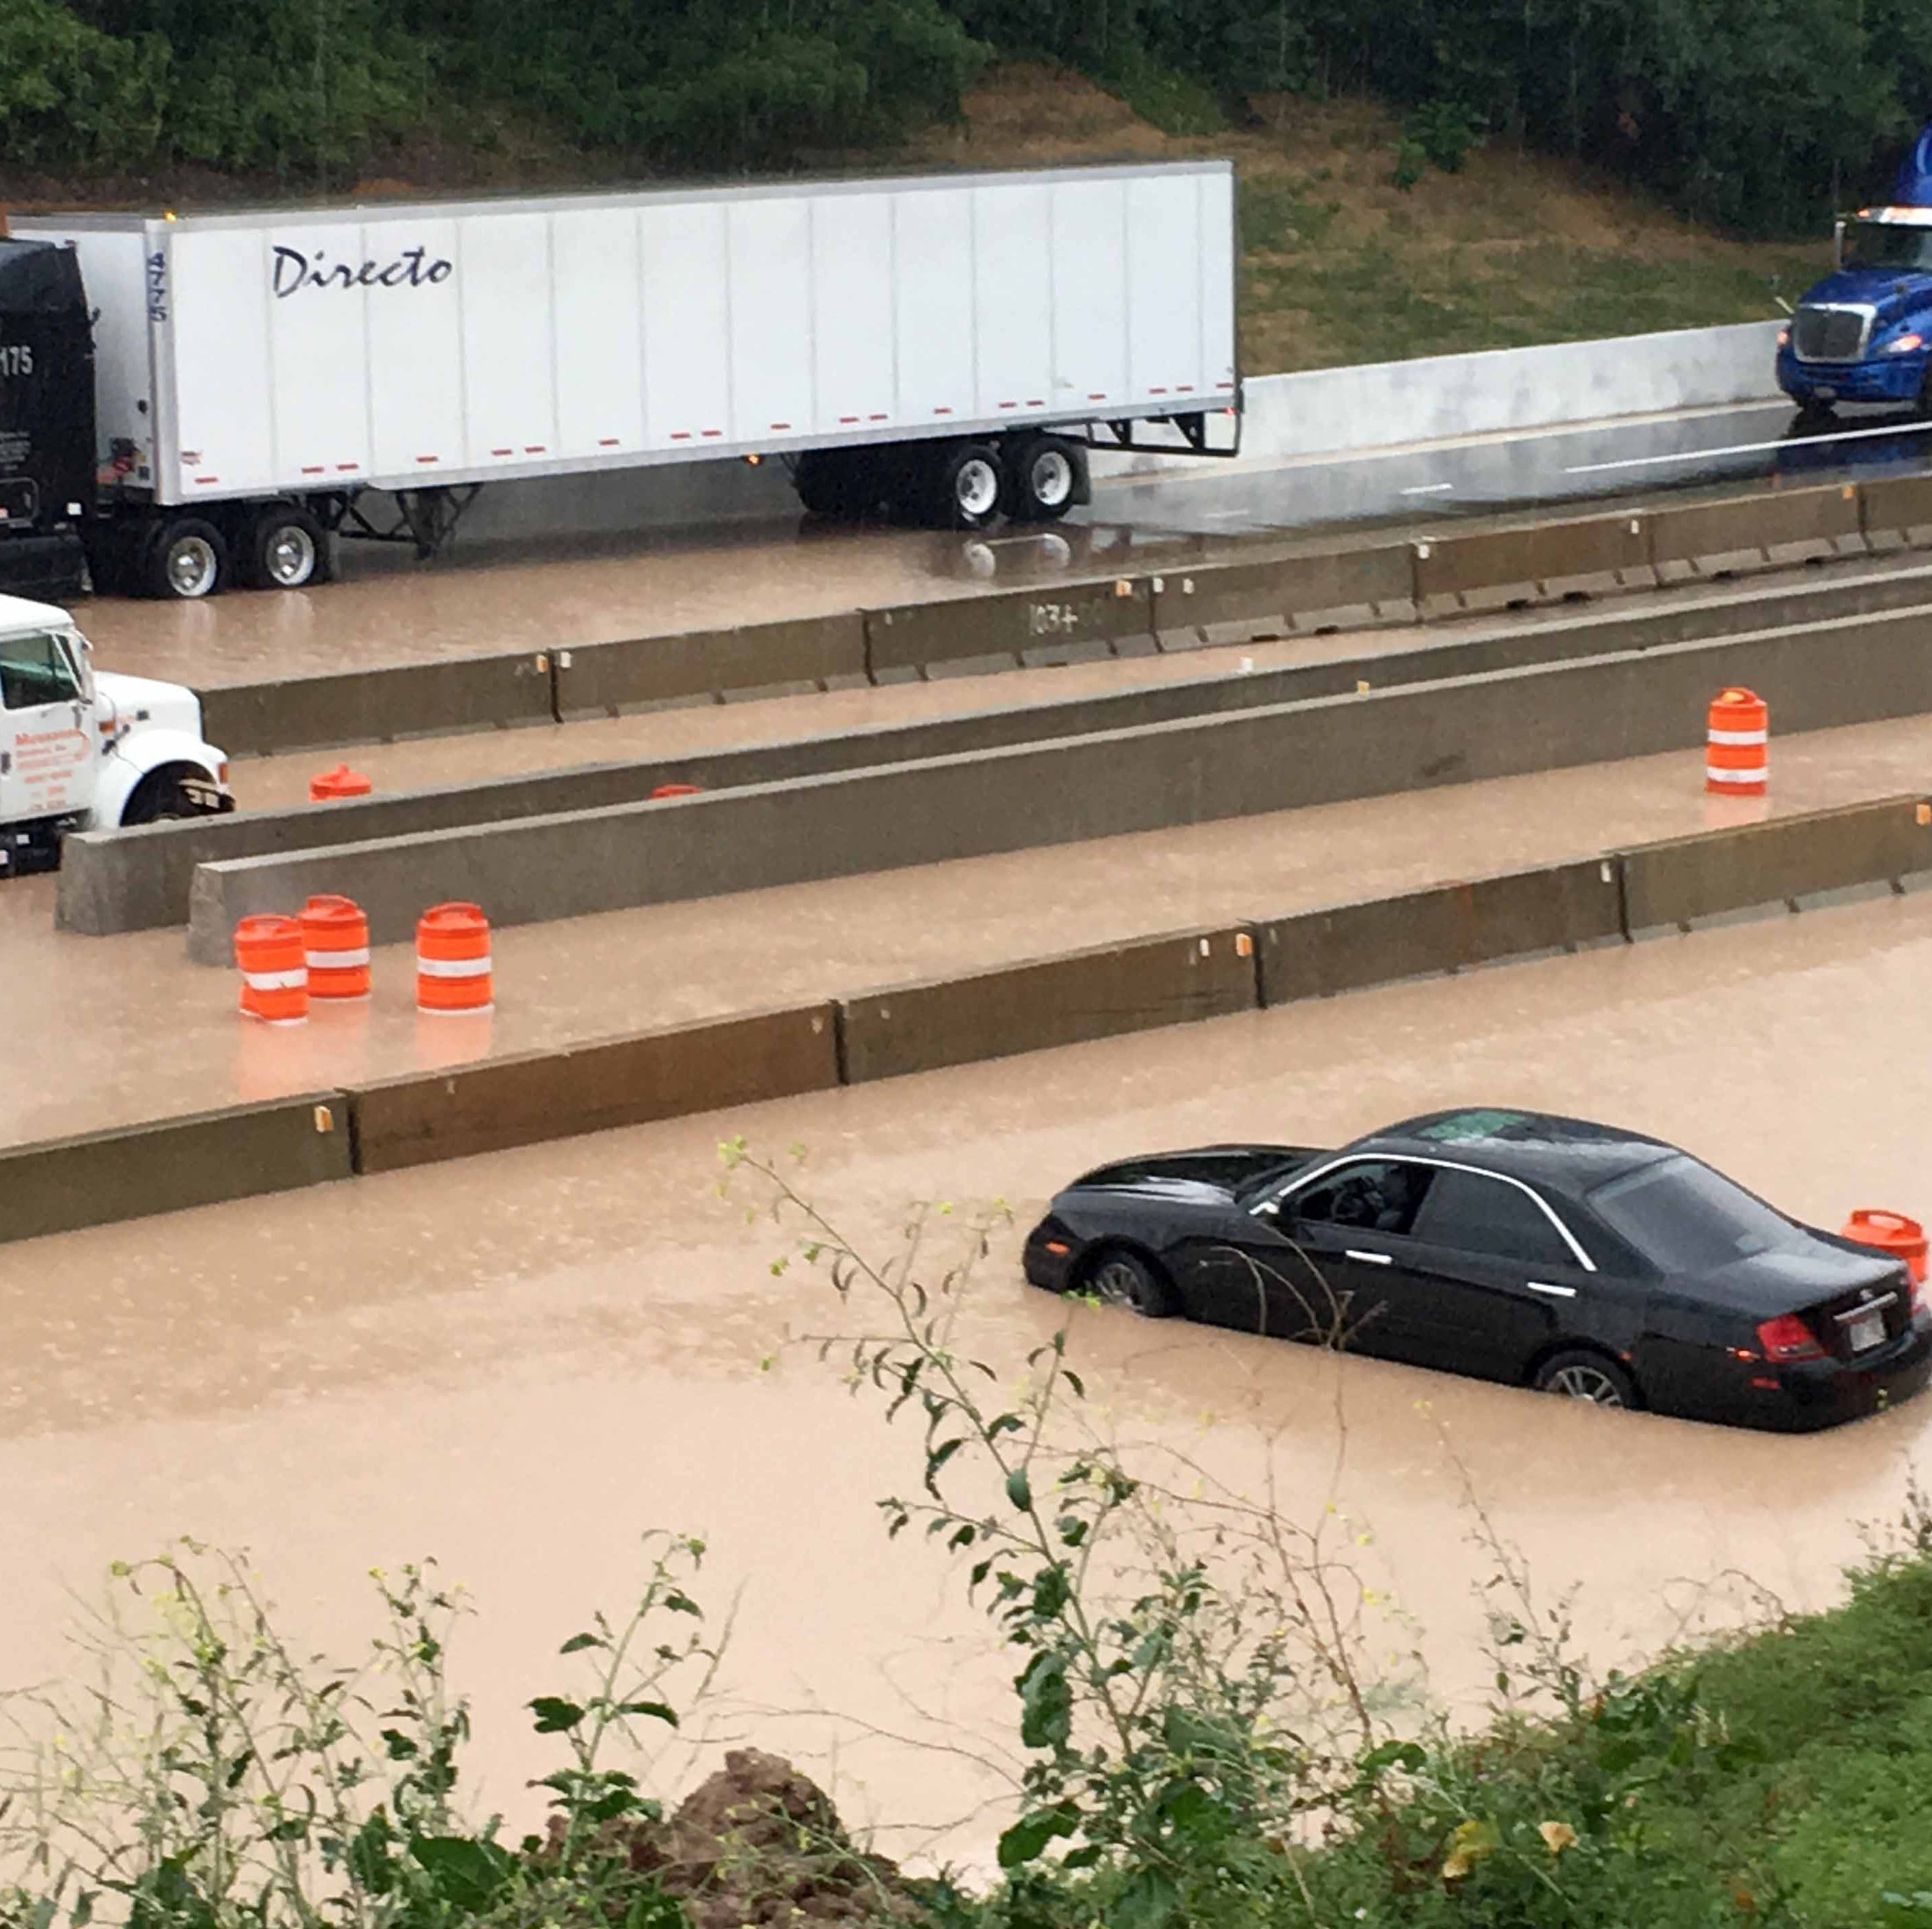 I-43 reopened again as storm dumps up to 6 inches of rain on southern Wisconsin